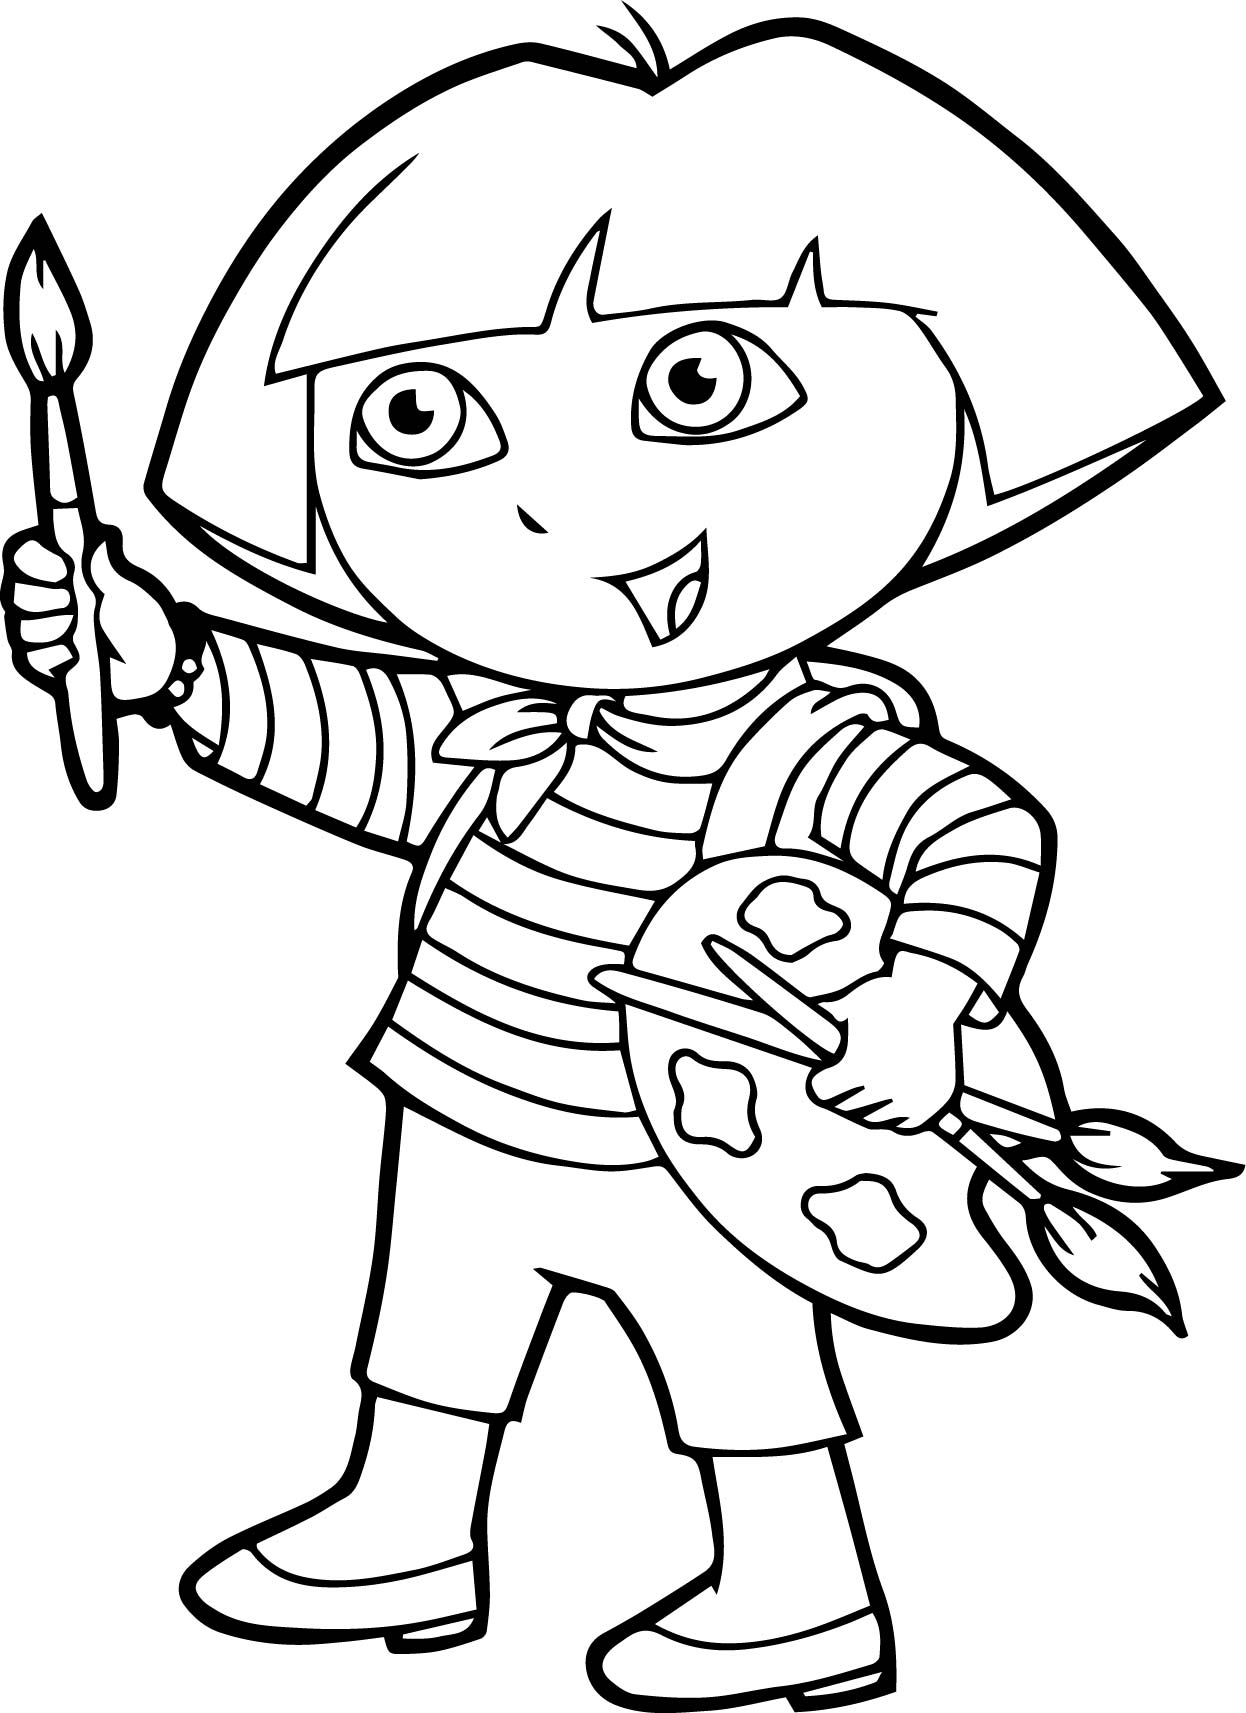 Dora Painting Coloring Page Wecoloringpage